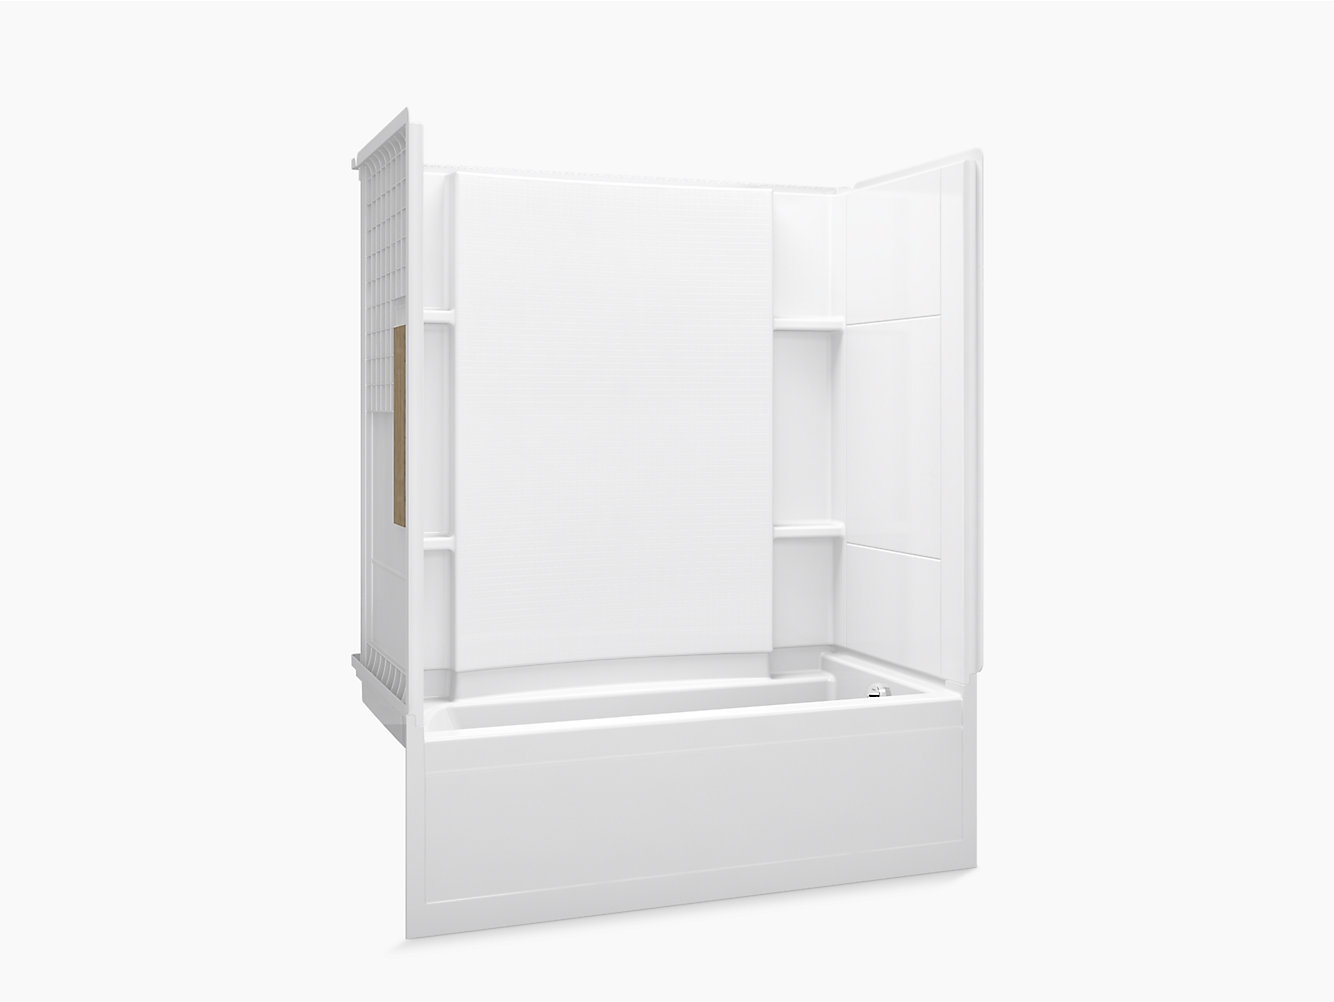 """Accord Series 7115, 60"""" x 32"""" Bath/Shower With Aging in Place ..."""